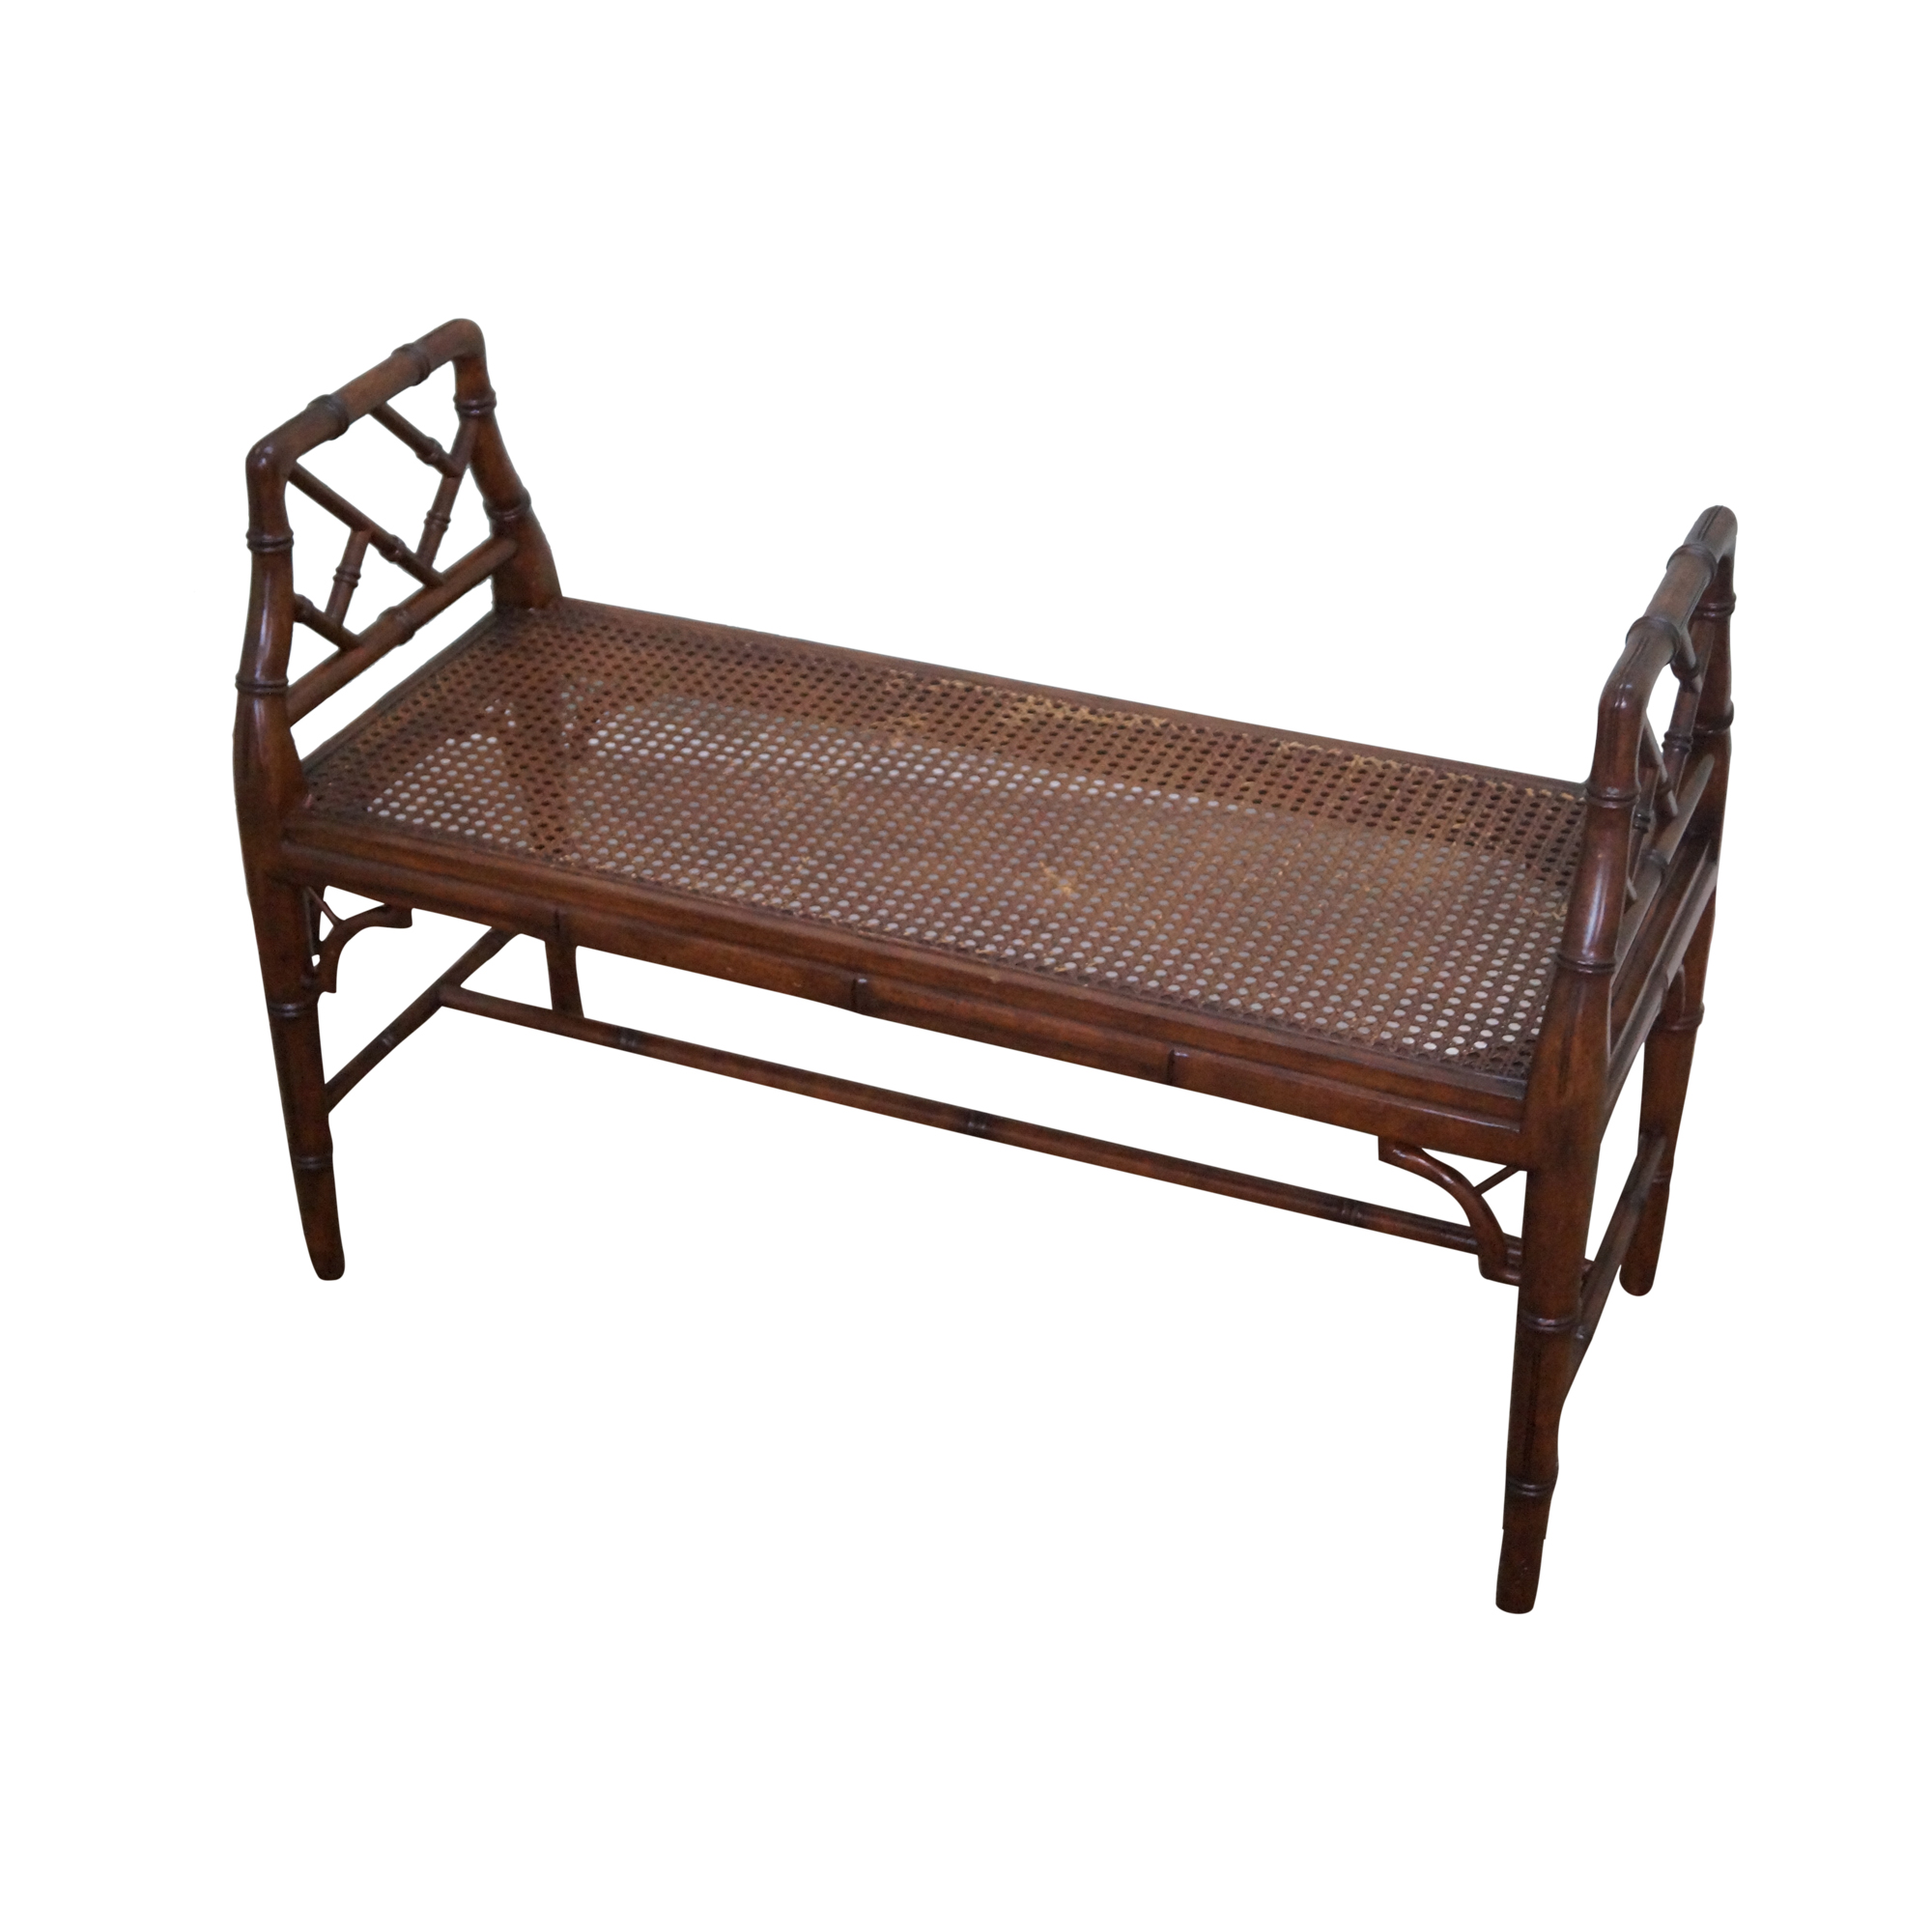 Chinese Chippendale Faux Bamboo Cane Seat Bench Chairish